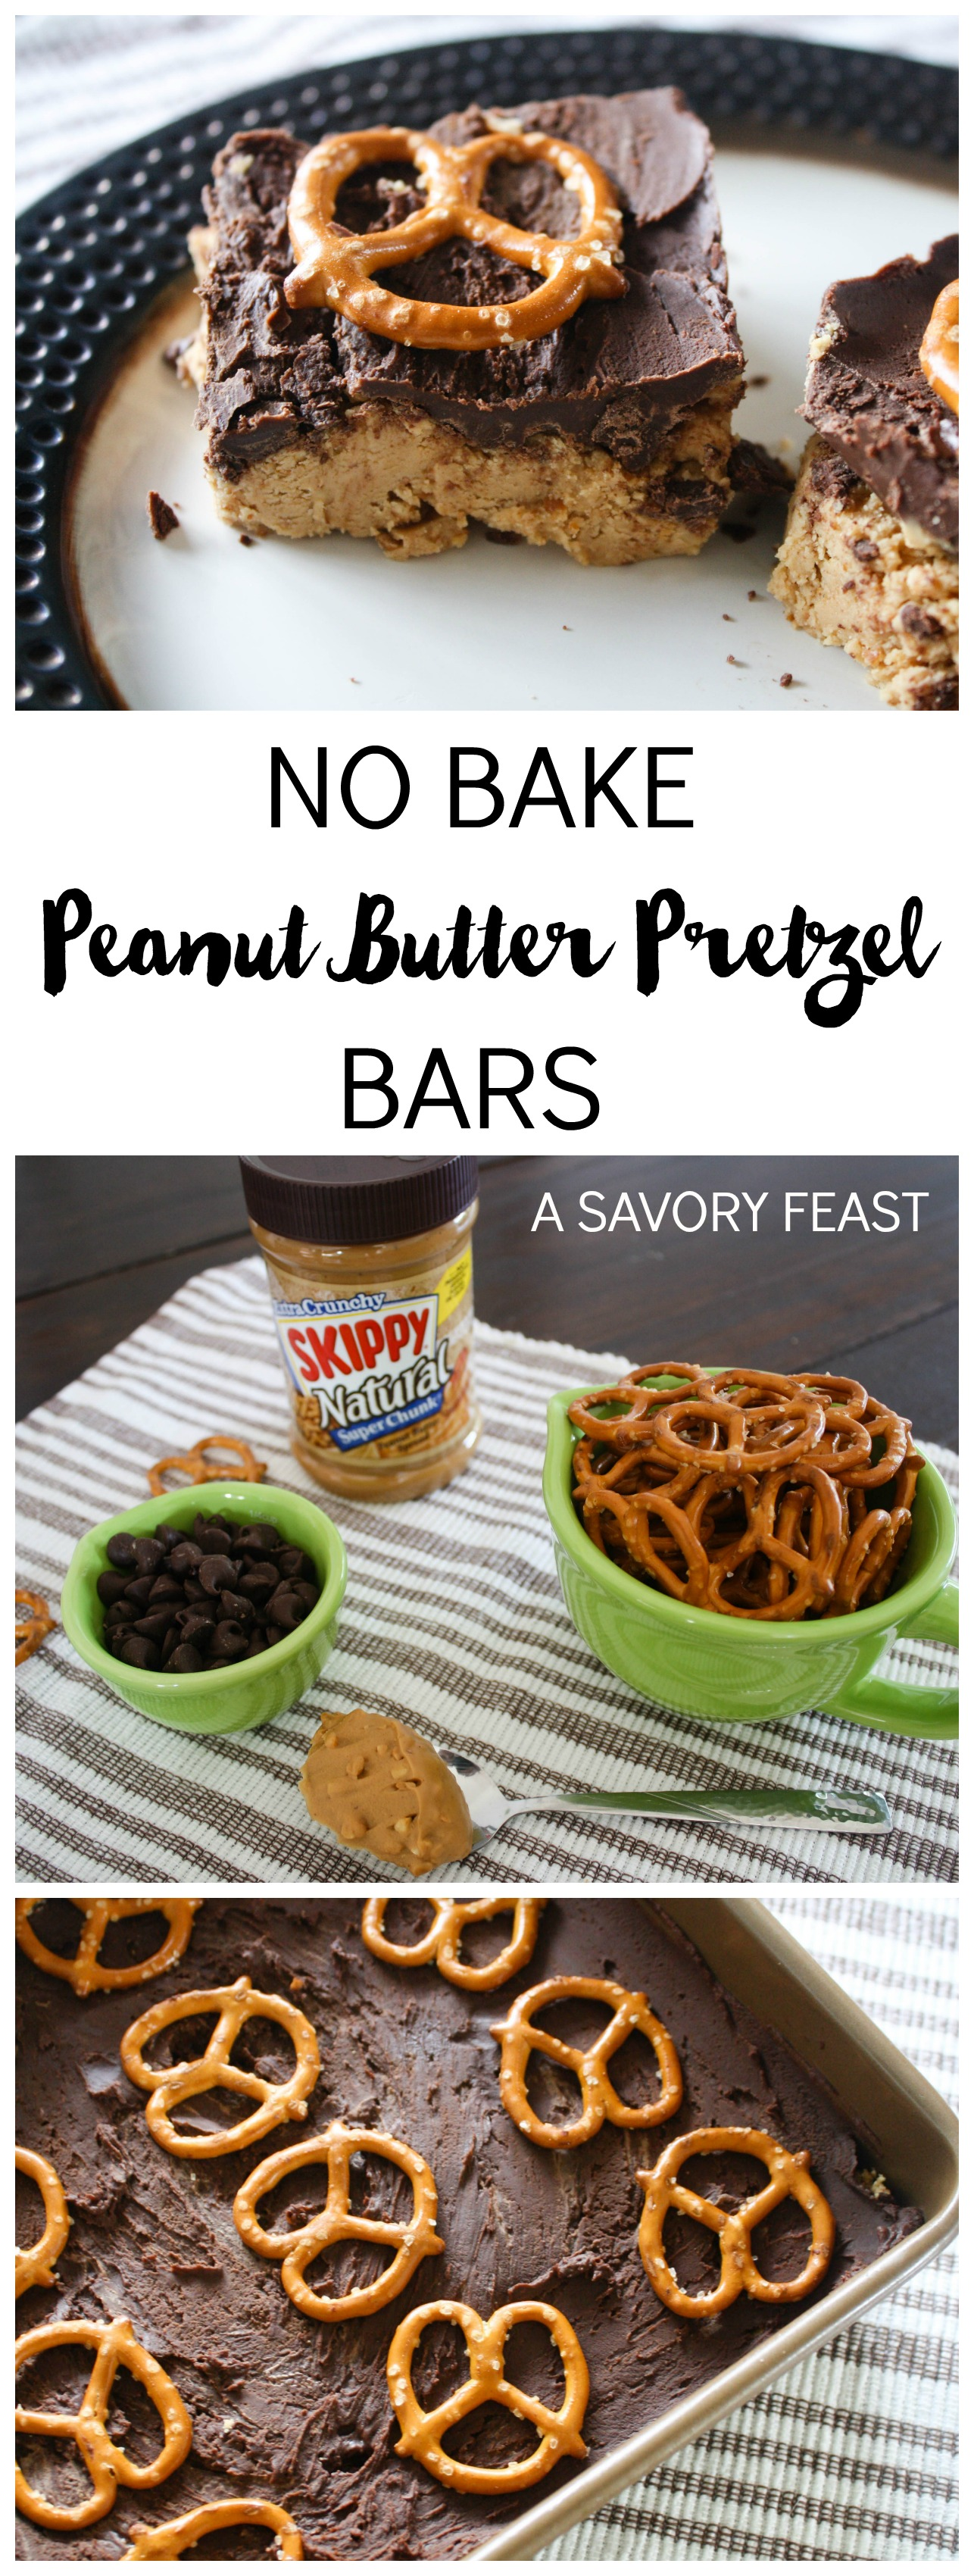 No Bake Peanut Butter Pretzel Bars // An easy treat that combines salty and sweet into one yummy bar!